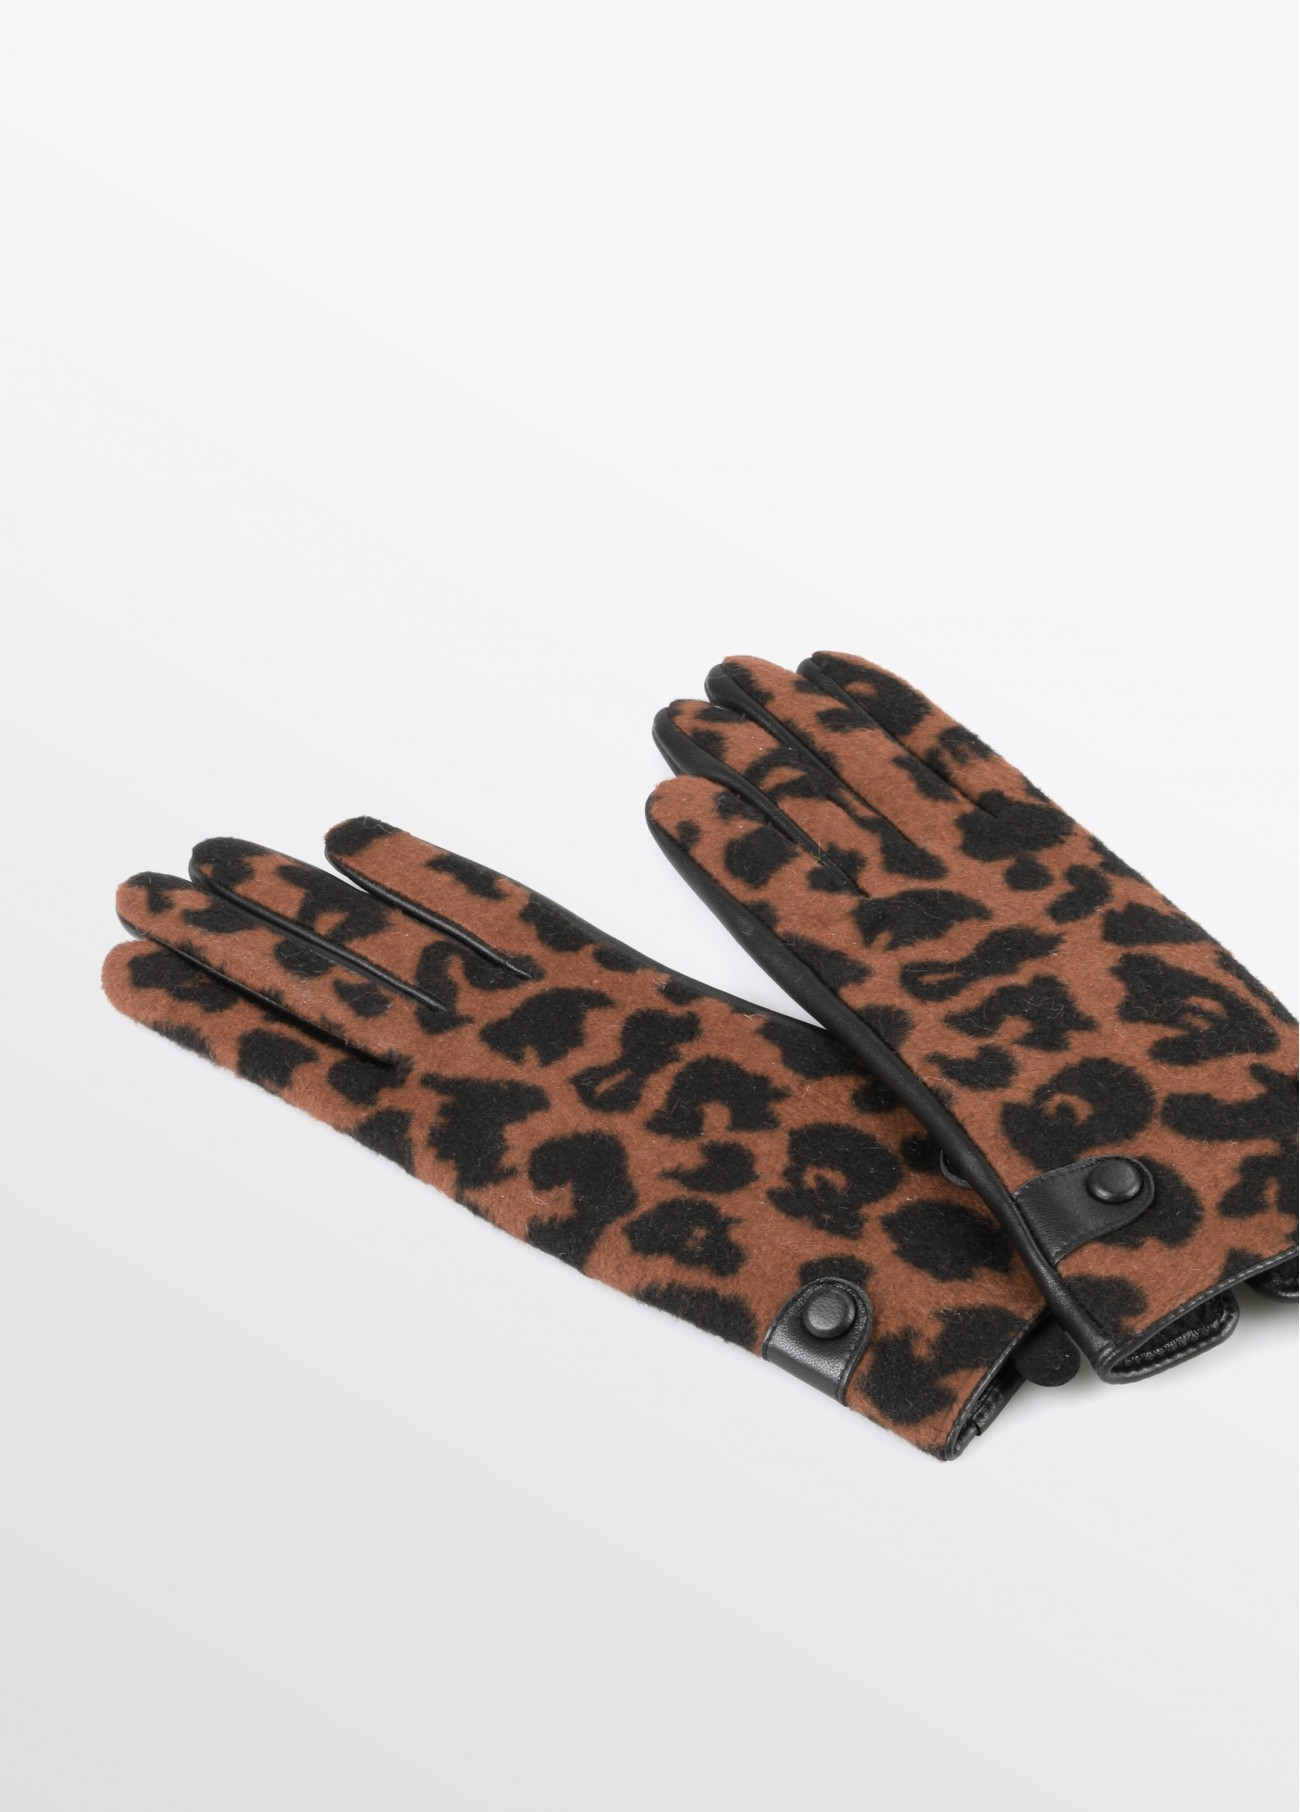 Guantes estampado leopardo, rojo, marron 2